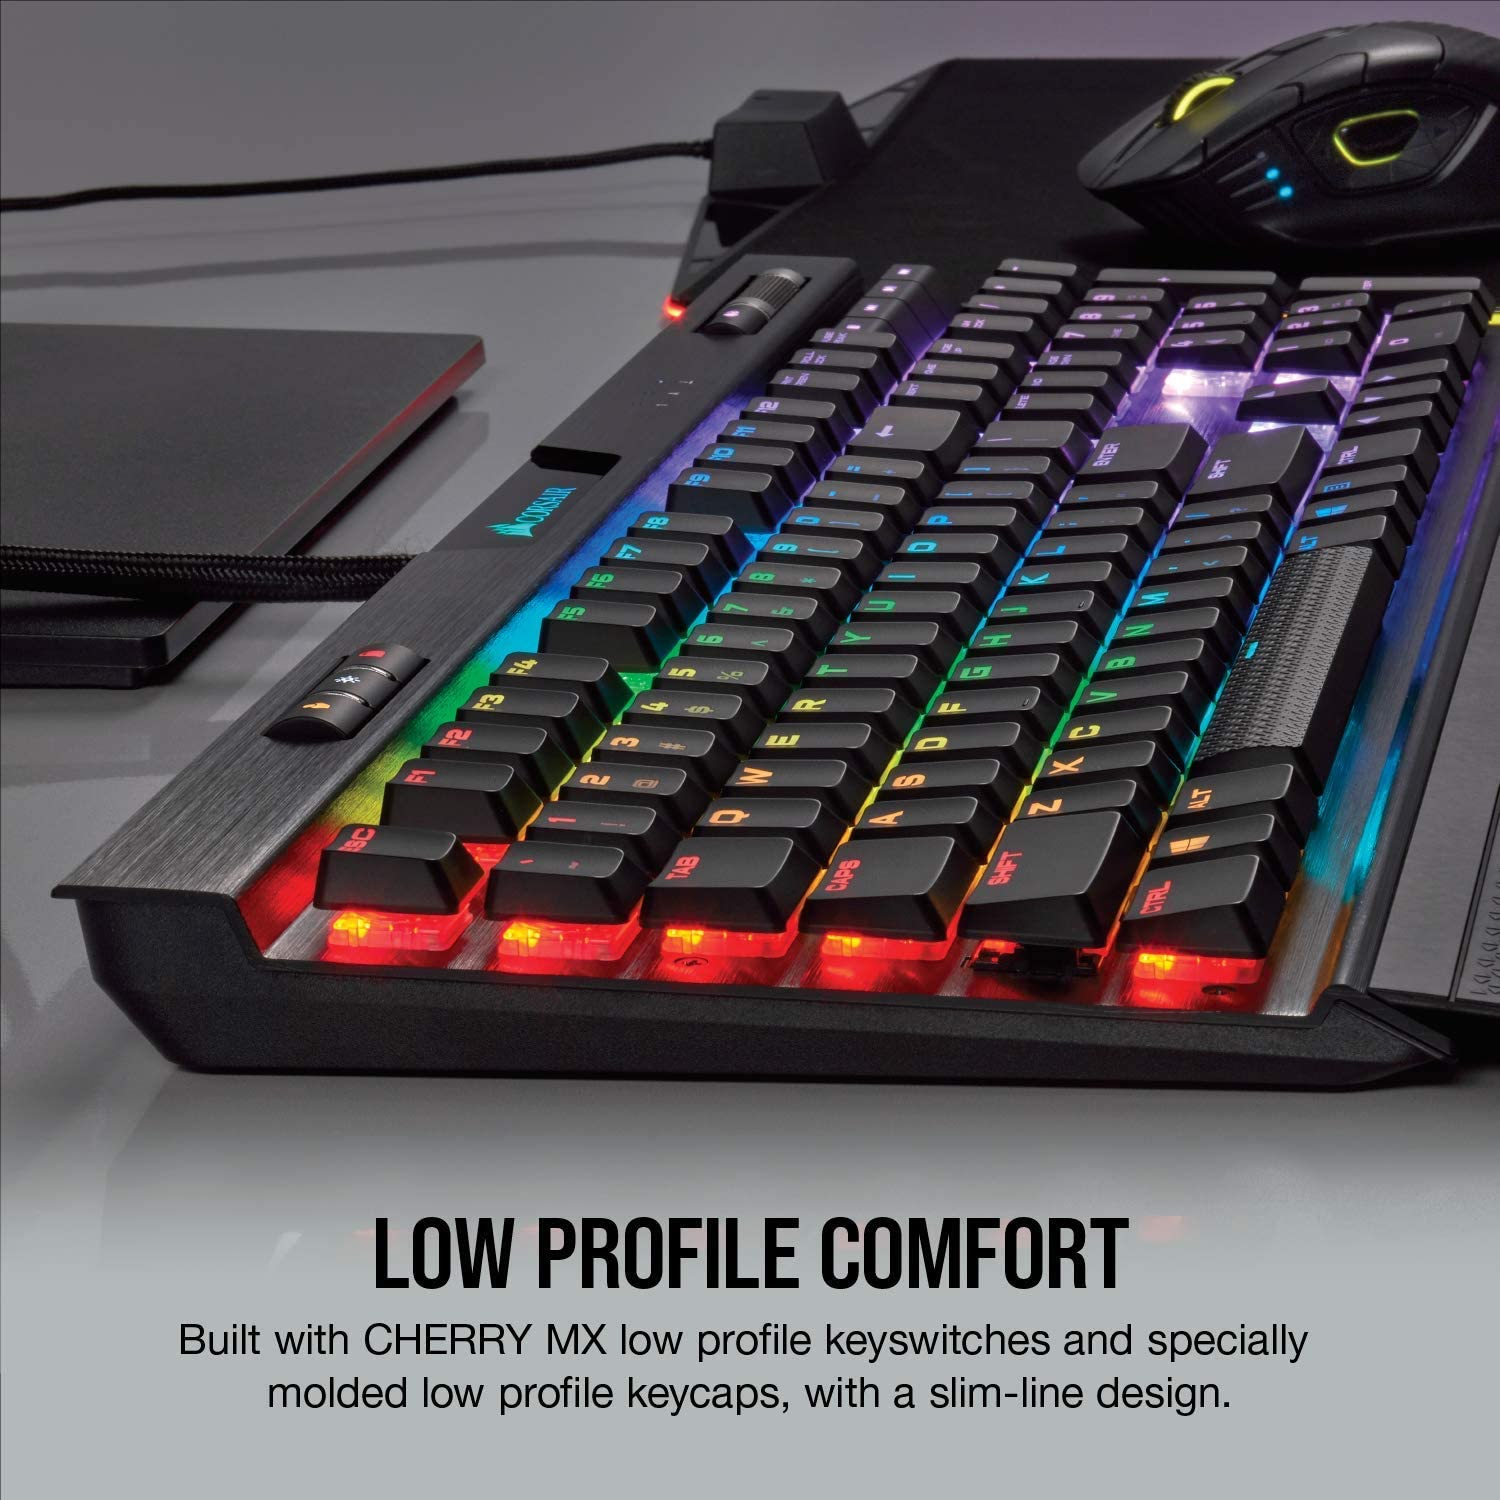 Corsair K70 RGB MK.2 Low Profile Mechanical Gaming Keyboard Backlit RGB LED Cherry MX Low Profile Red CH-9109017-NA Linear /& Quiet